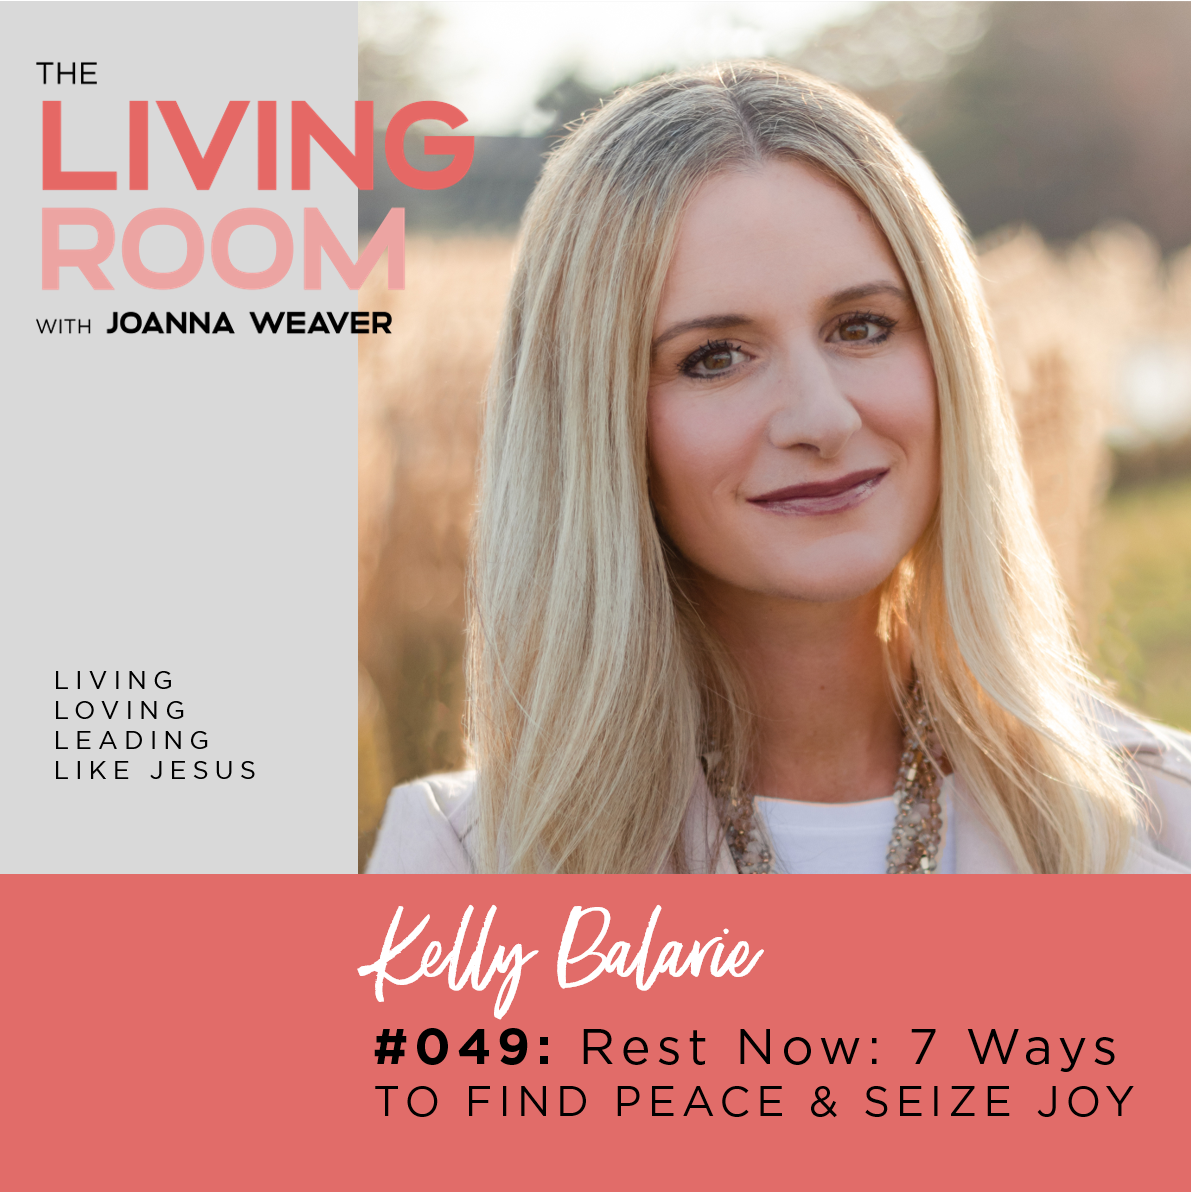 Rest nNow with Kelly Balarie - The Living r